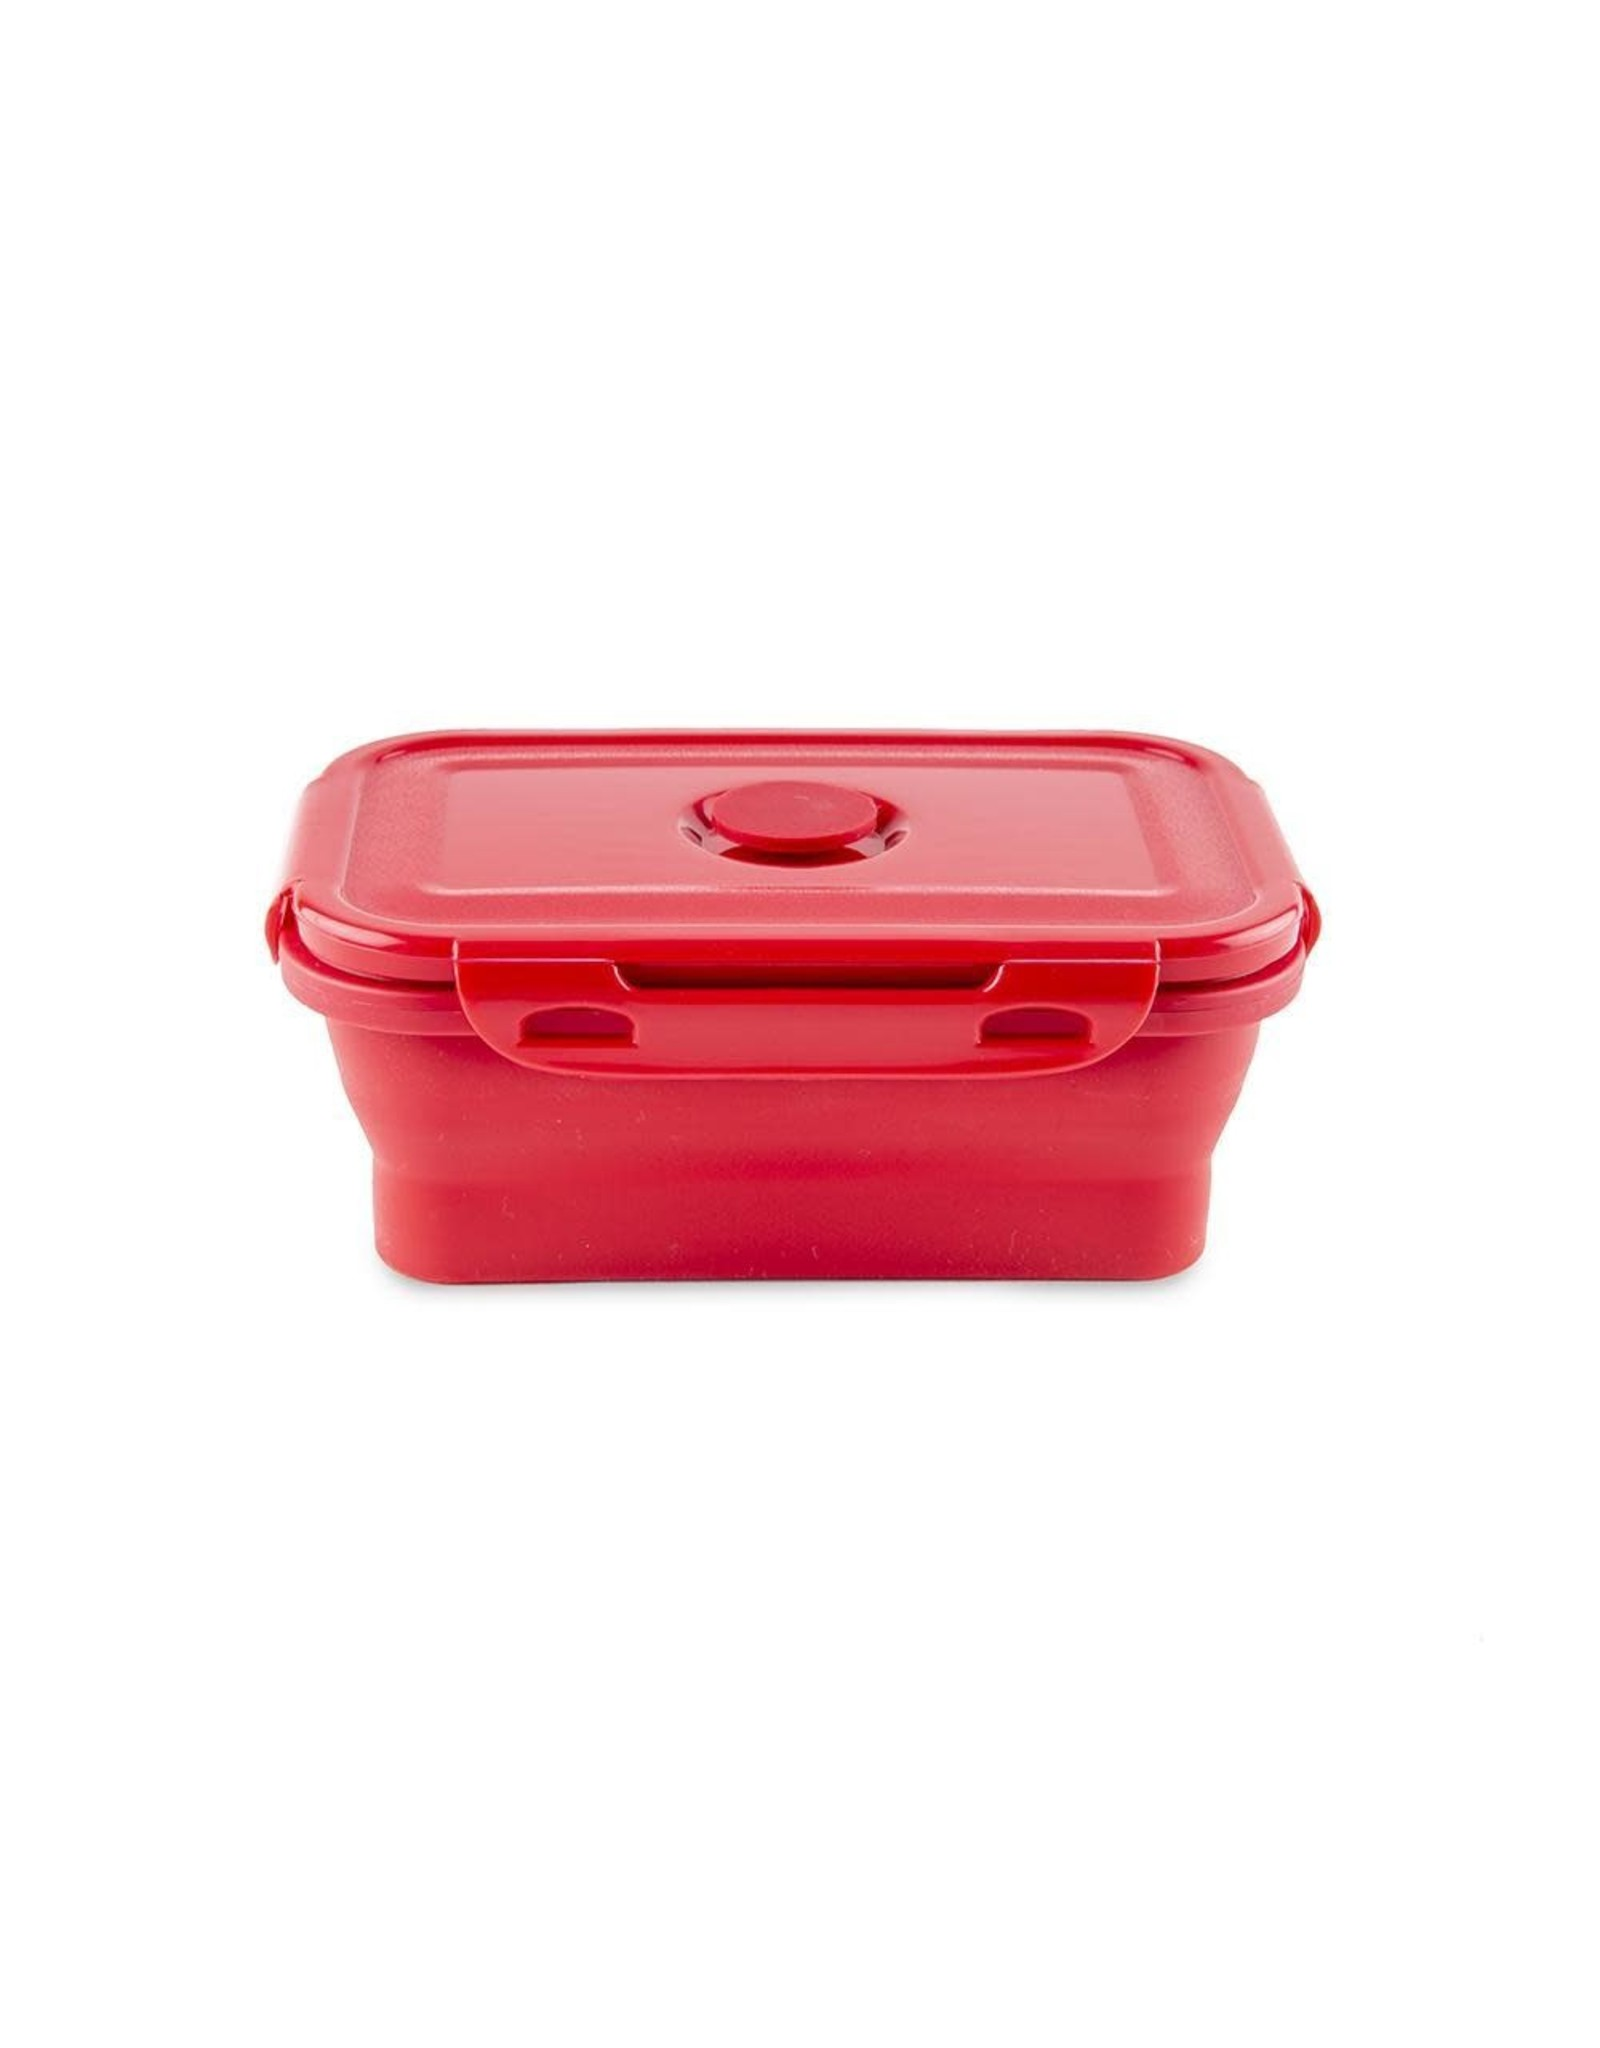 truweigh Truweigh Crimson 200x.01g Collapsible bowl scale